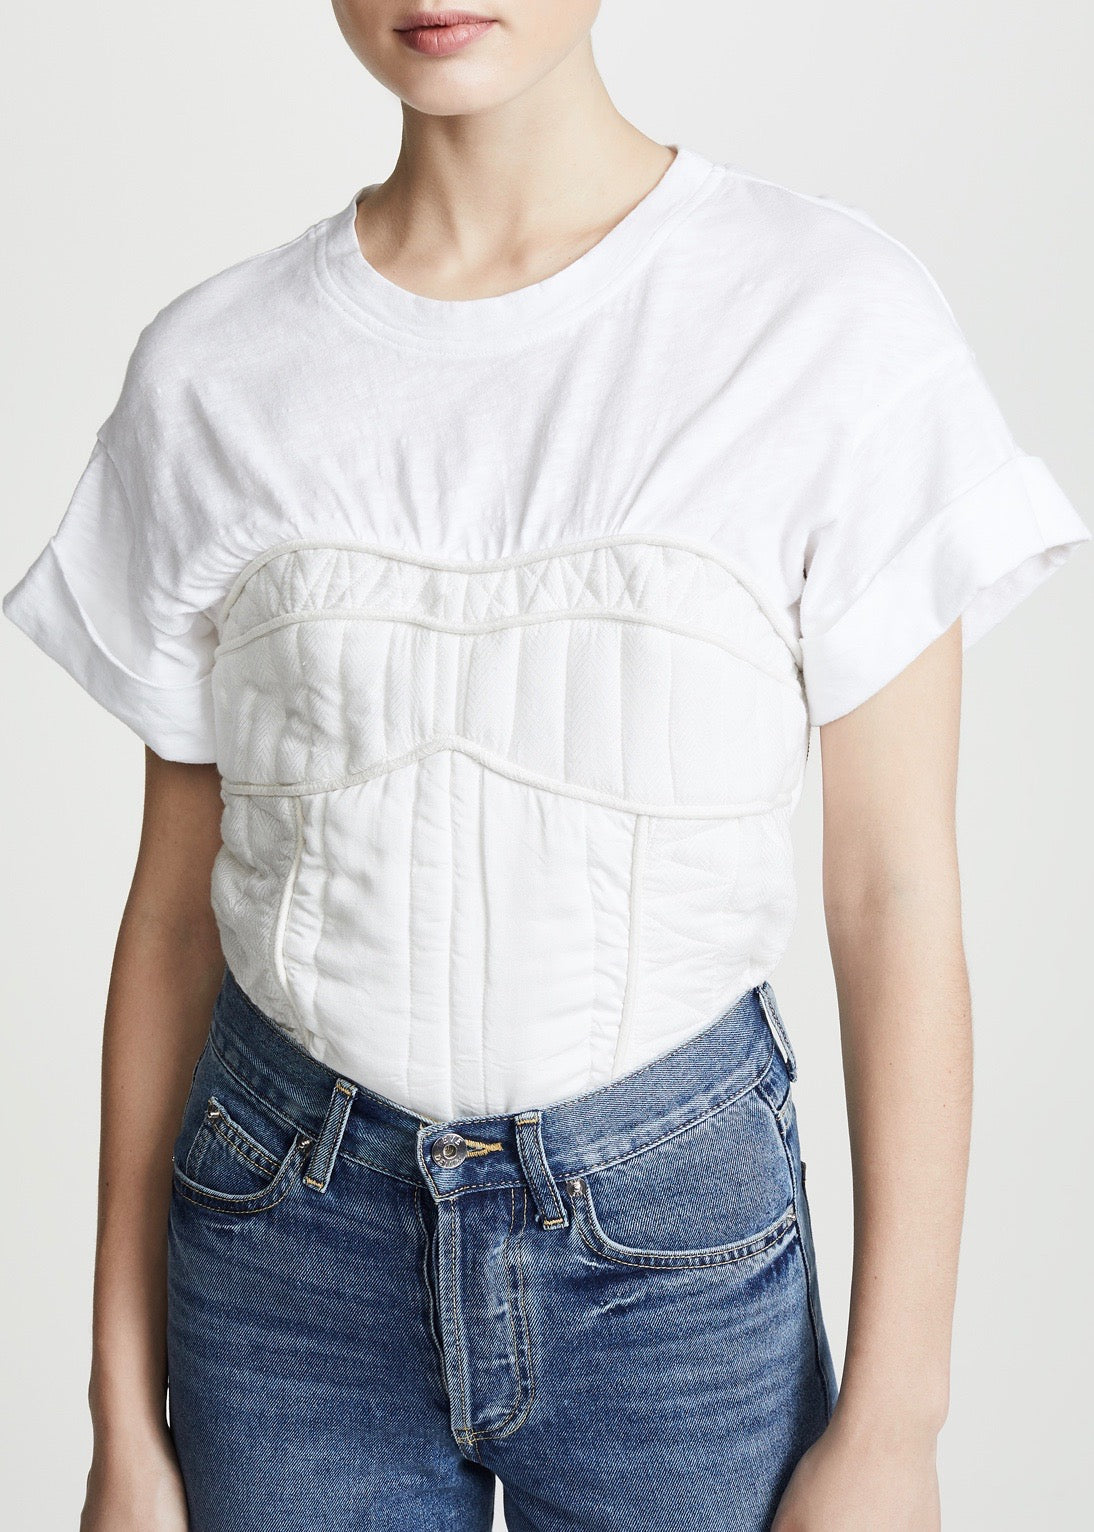 Sea O'Keefe quilted corset tee in eggshell